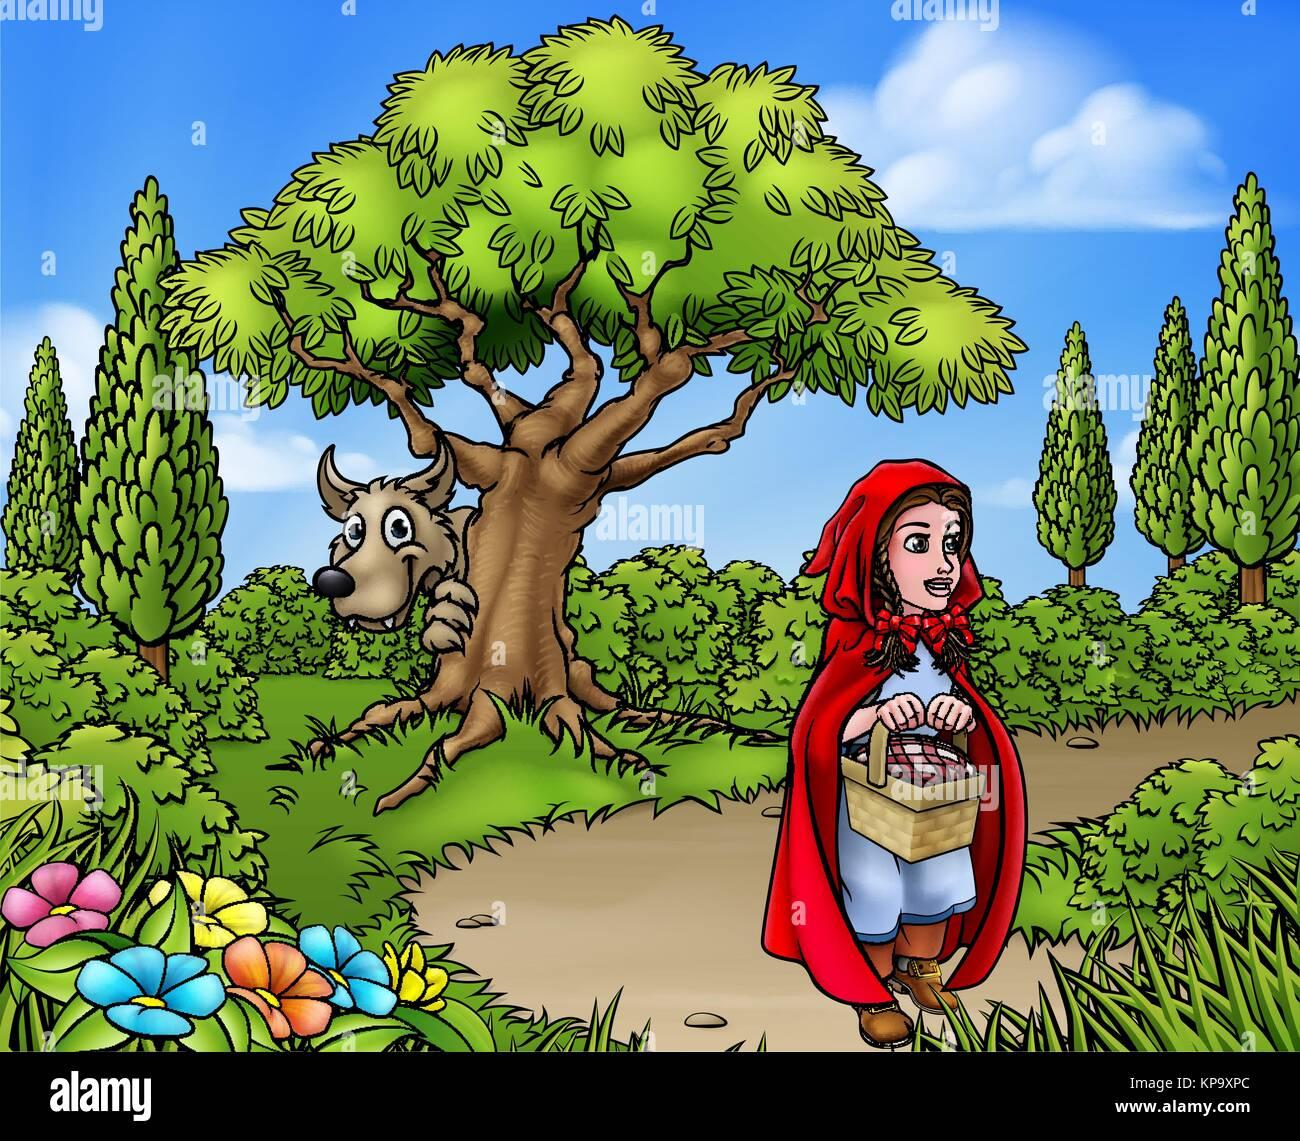 Big bad wolf cartoon stock photos big bad wolf cartoon - Hood cartoon wallpaper ...